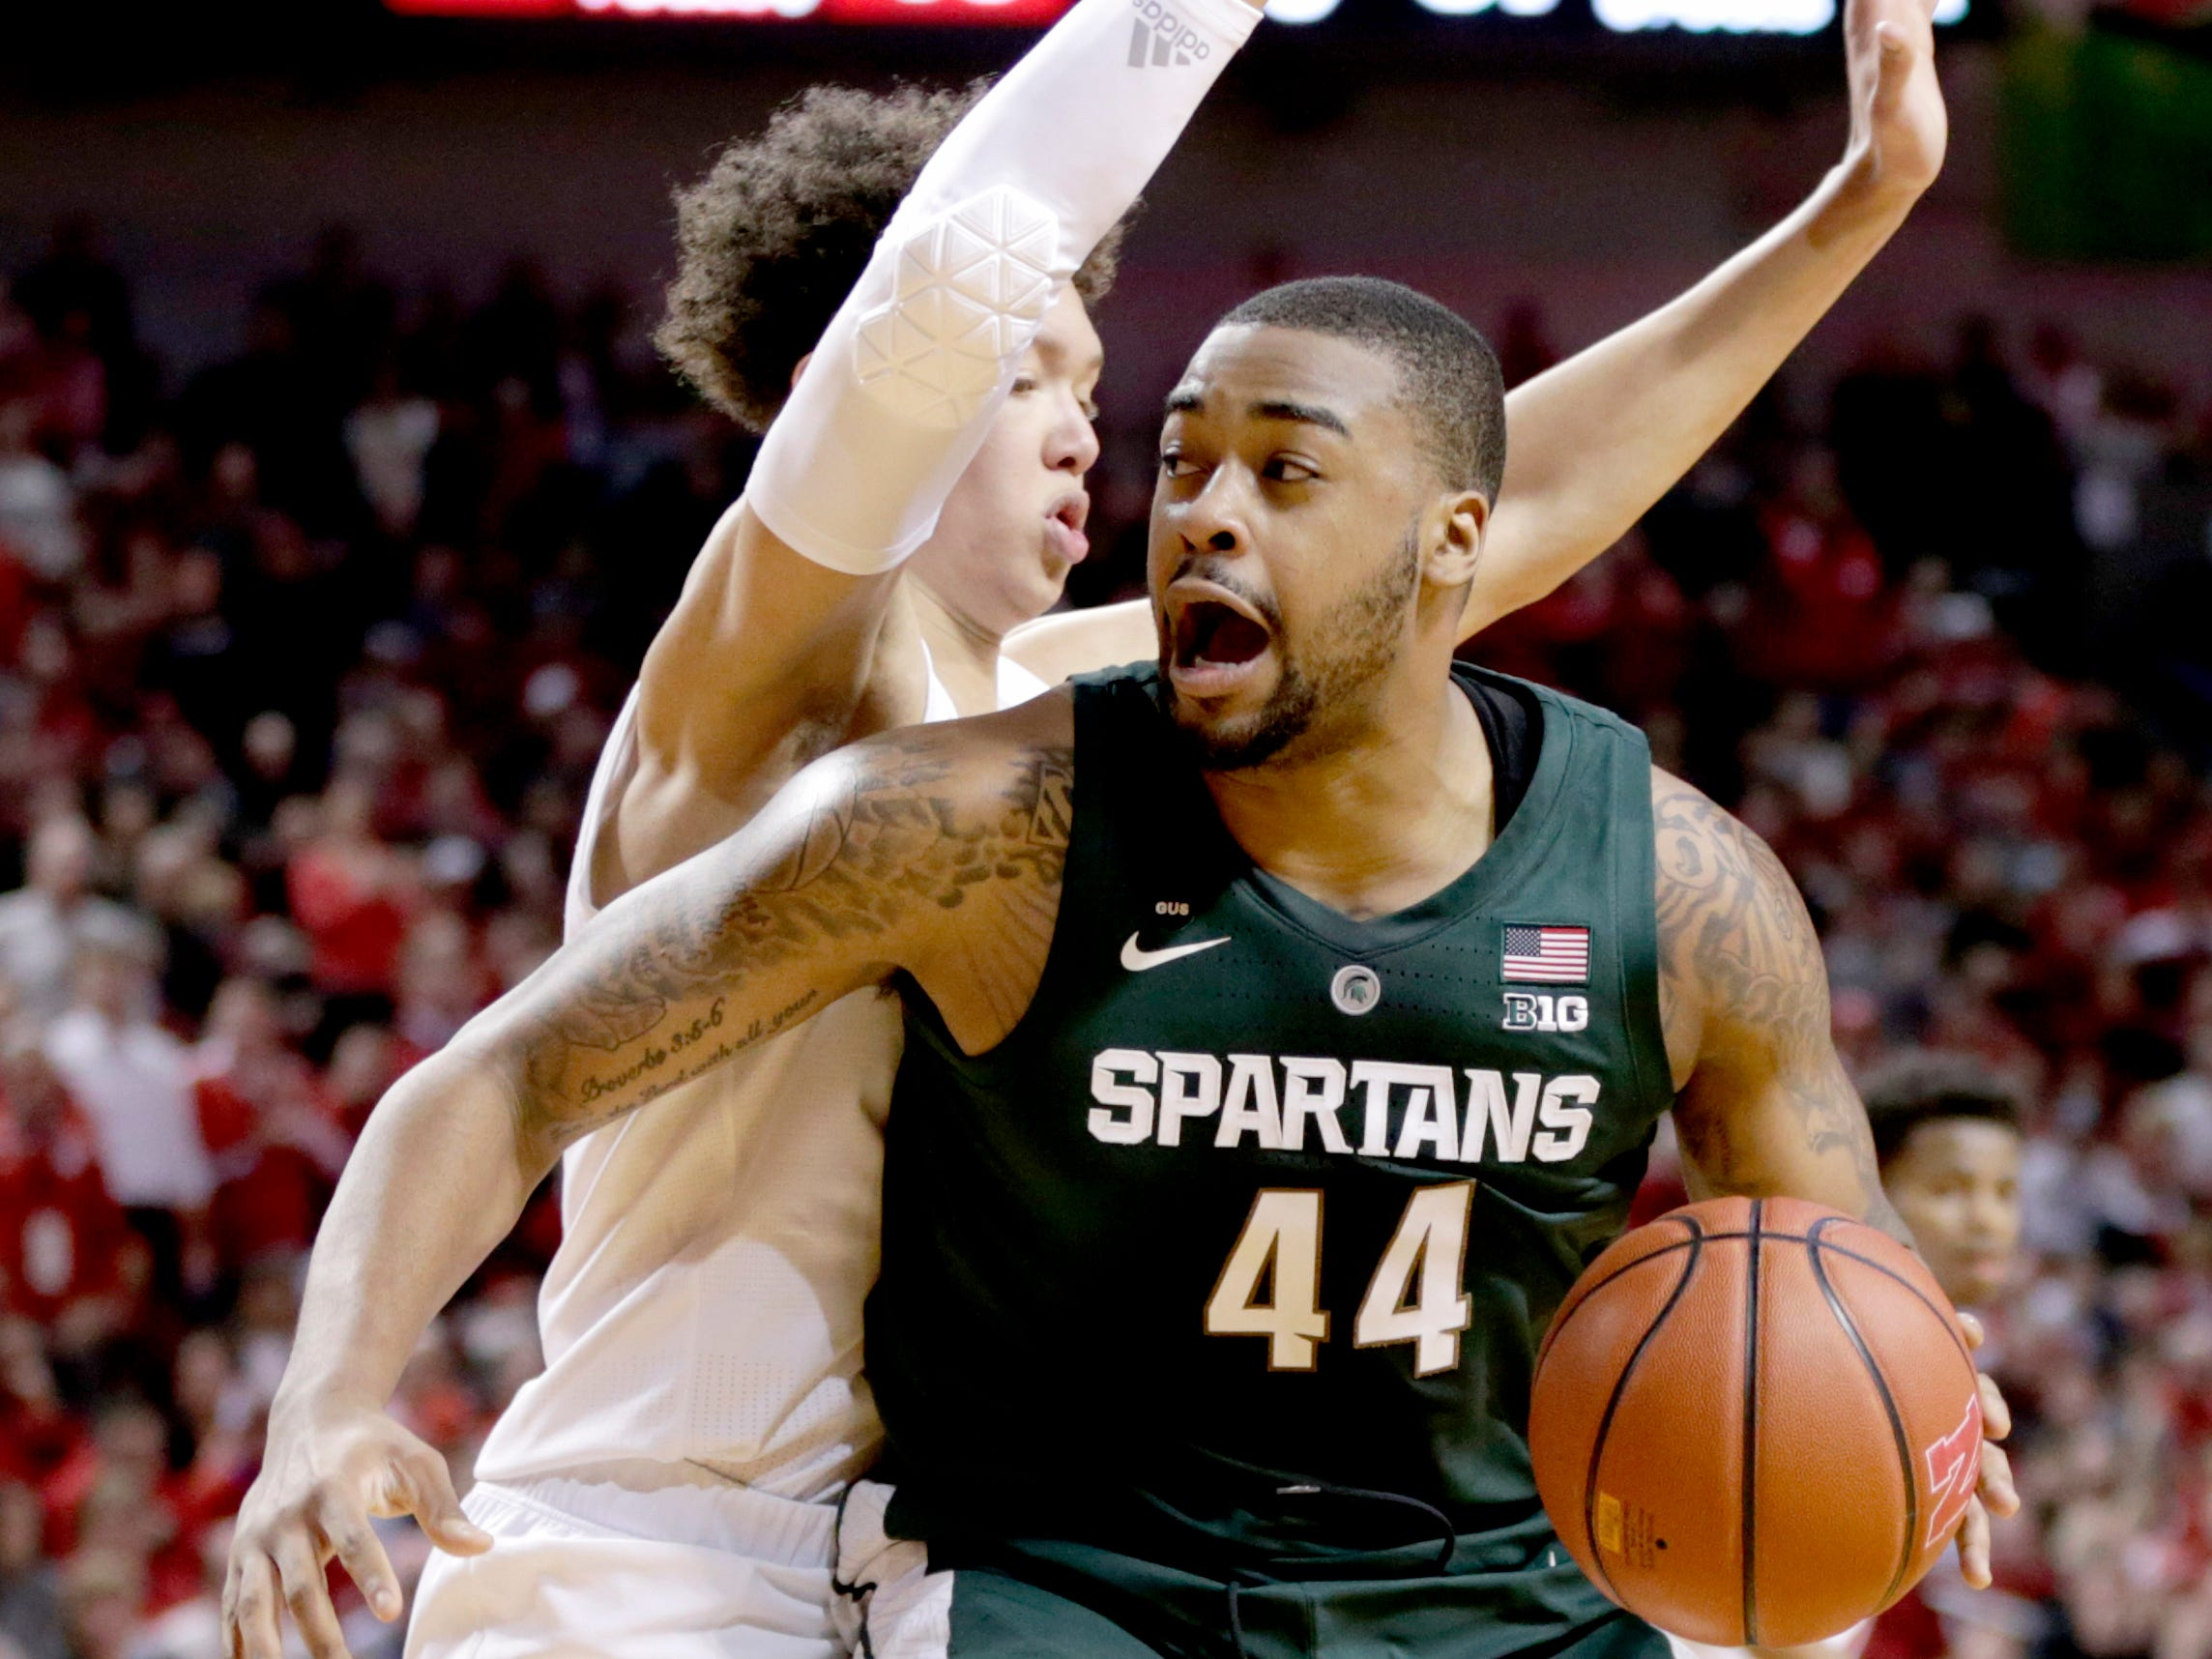 Michigan State's Nick Ward (44) is defended by Nebraska's Isaiah Roby, rear, during the second half of an NCAA college basketball game in Lincoln, Neb., Thursday, Jan. 17, 2019. Michigan State won 70-64.